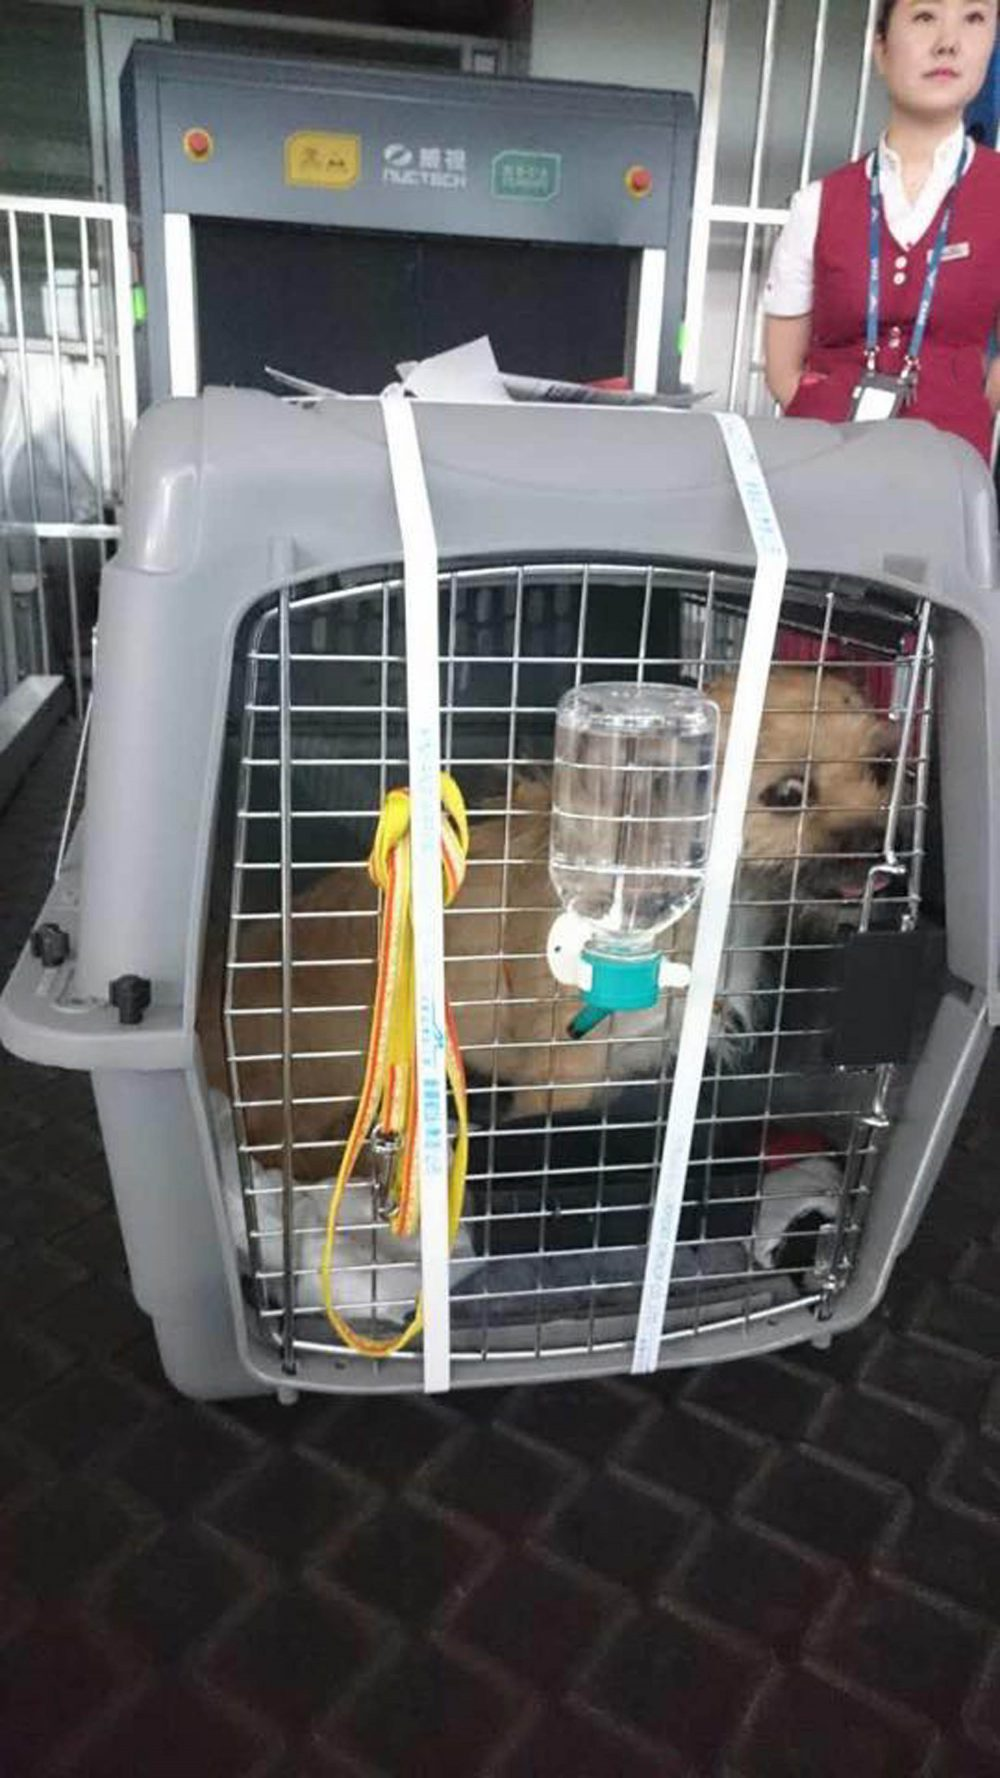 Gobi has been left well equipped for her flight with water and her owners socks for company. Credit: Facebook/Bring Gobi Home